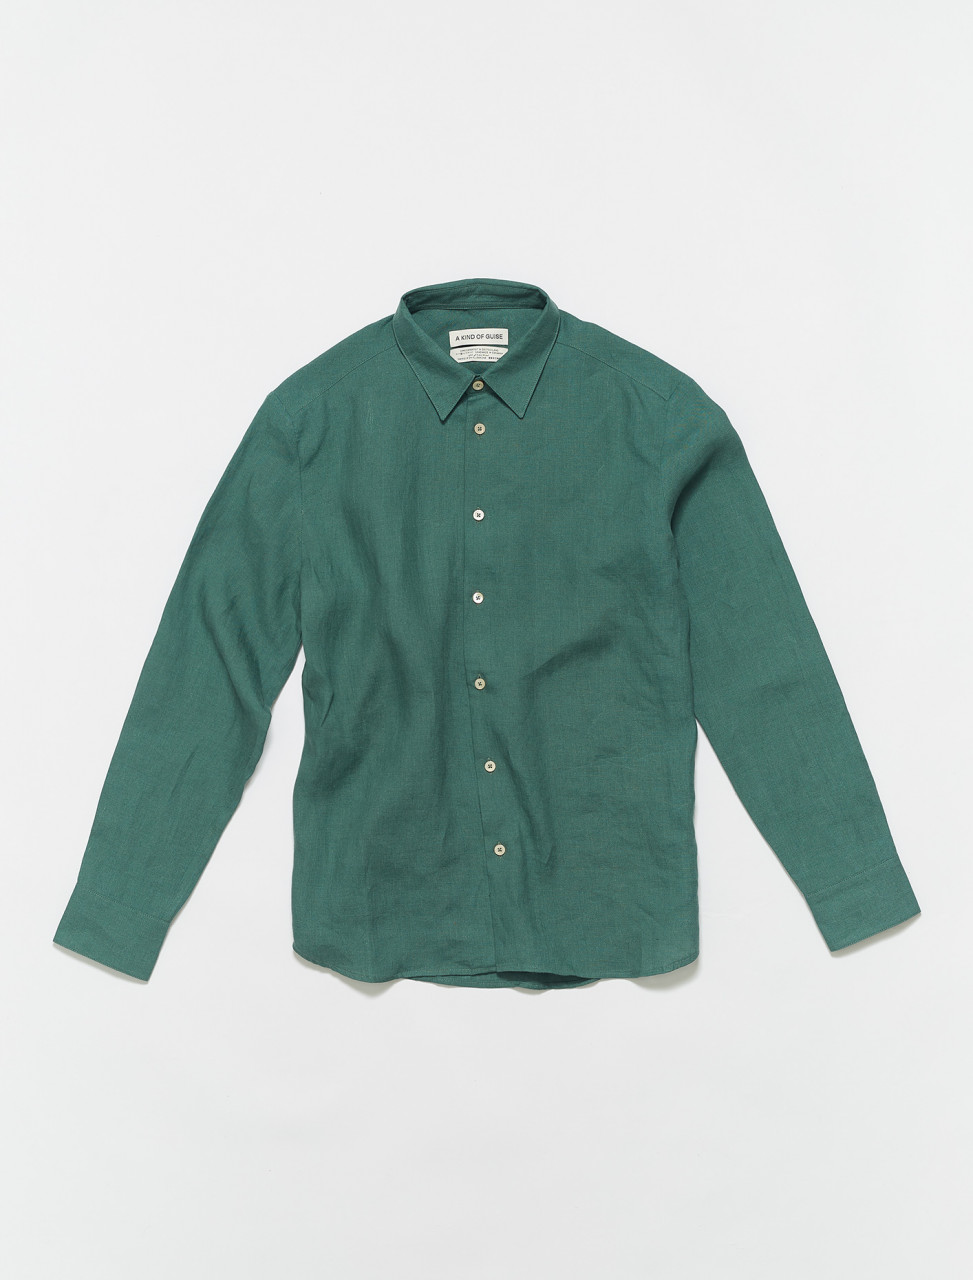 102-700-512 A KIND OF GUISE FLORES SHIRT JADE